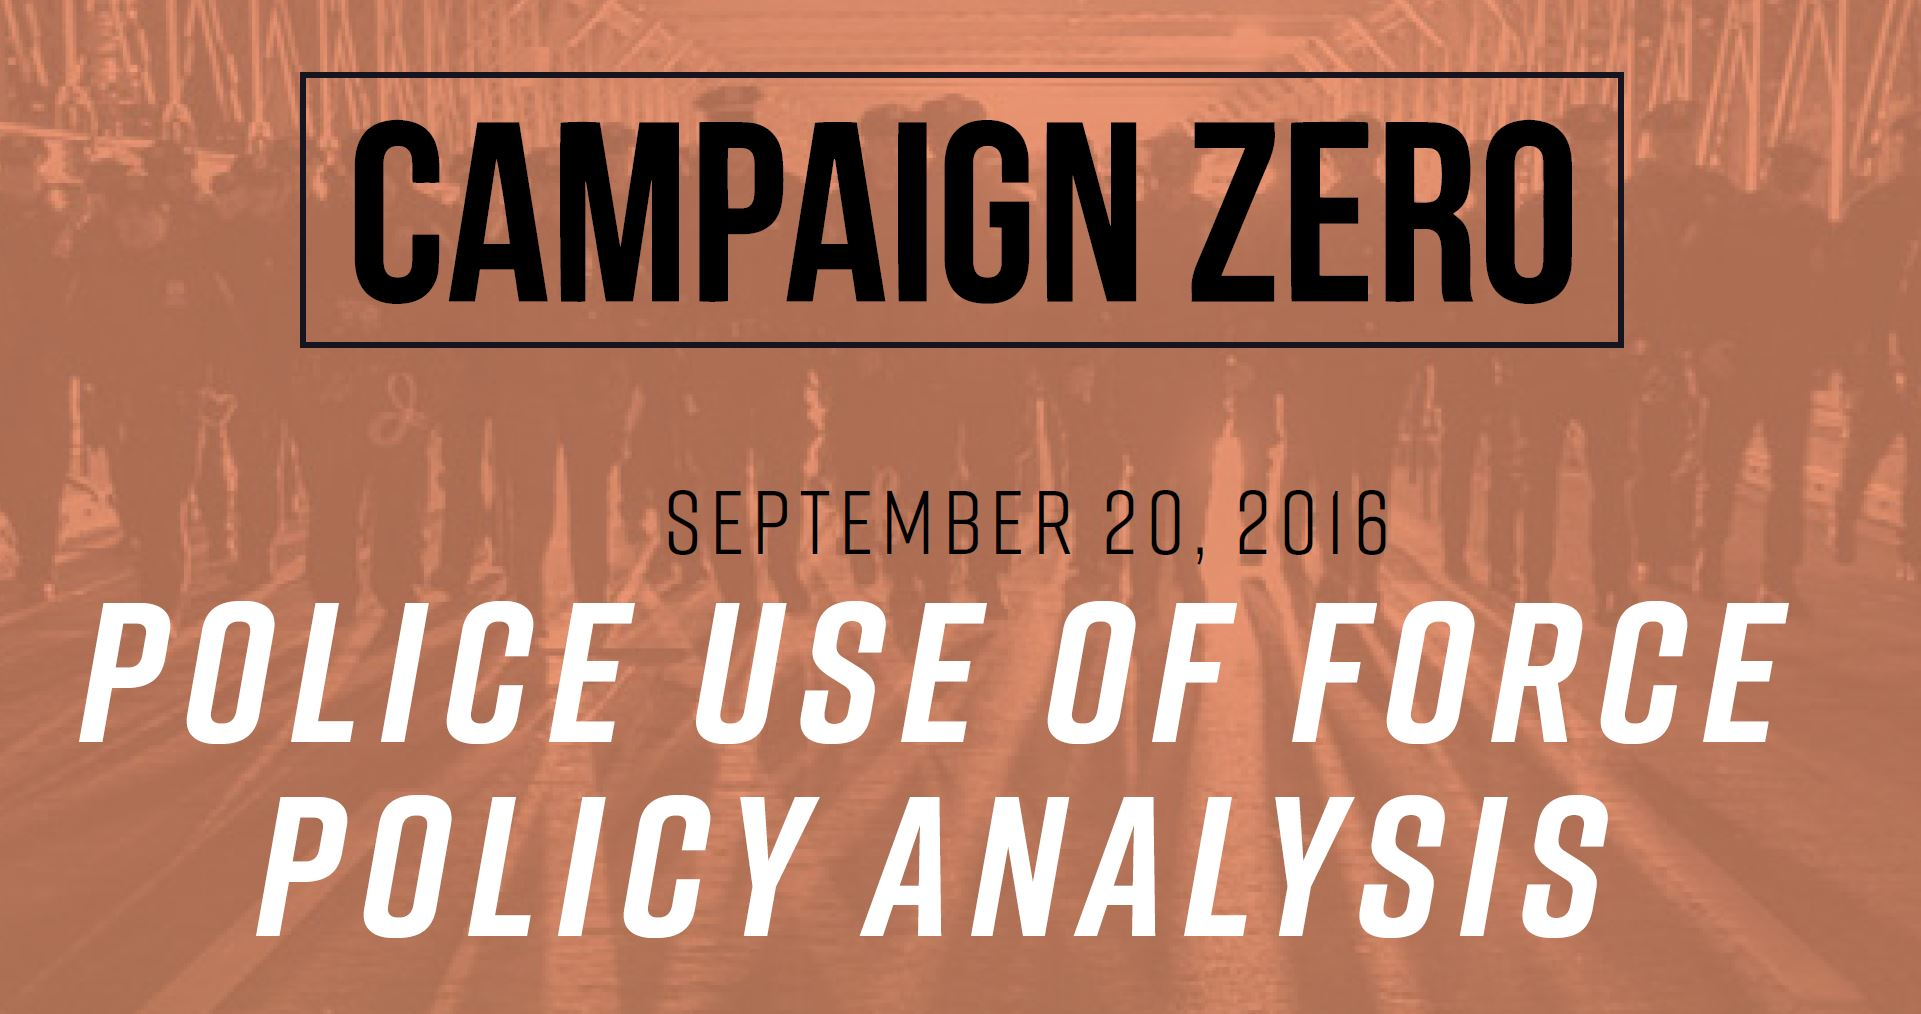 Image_Campaign_Zero_use_of_force_report.JPG